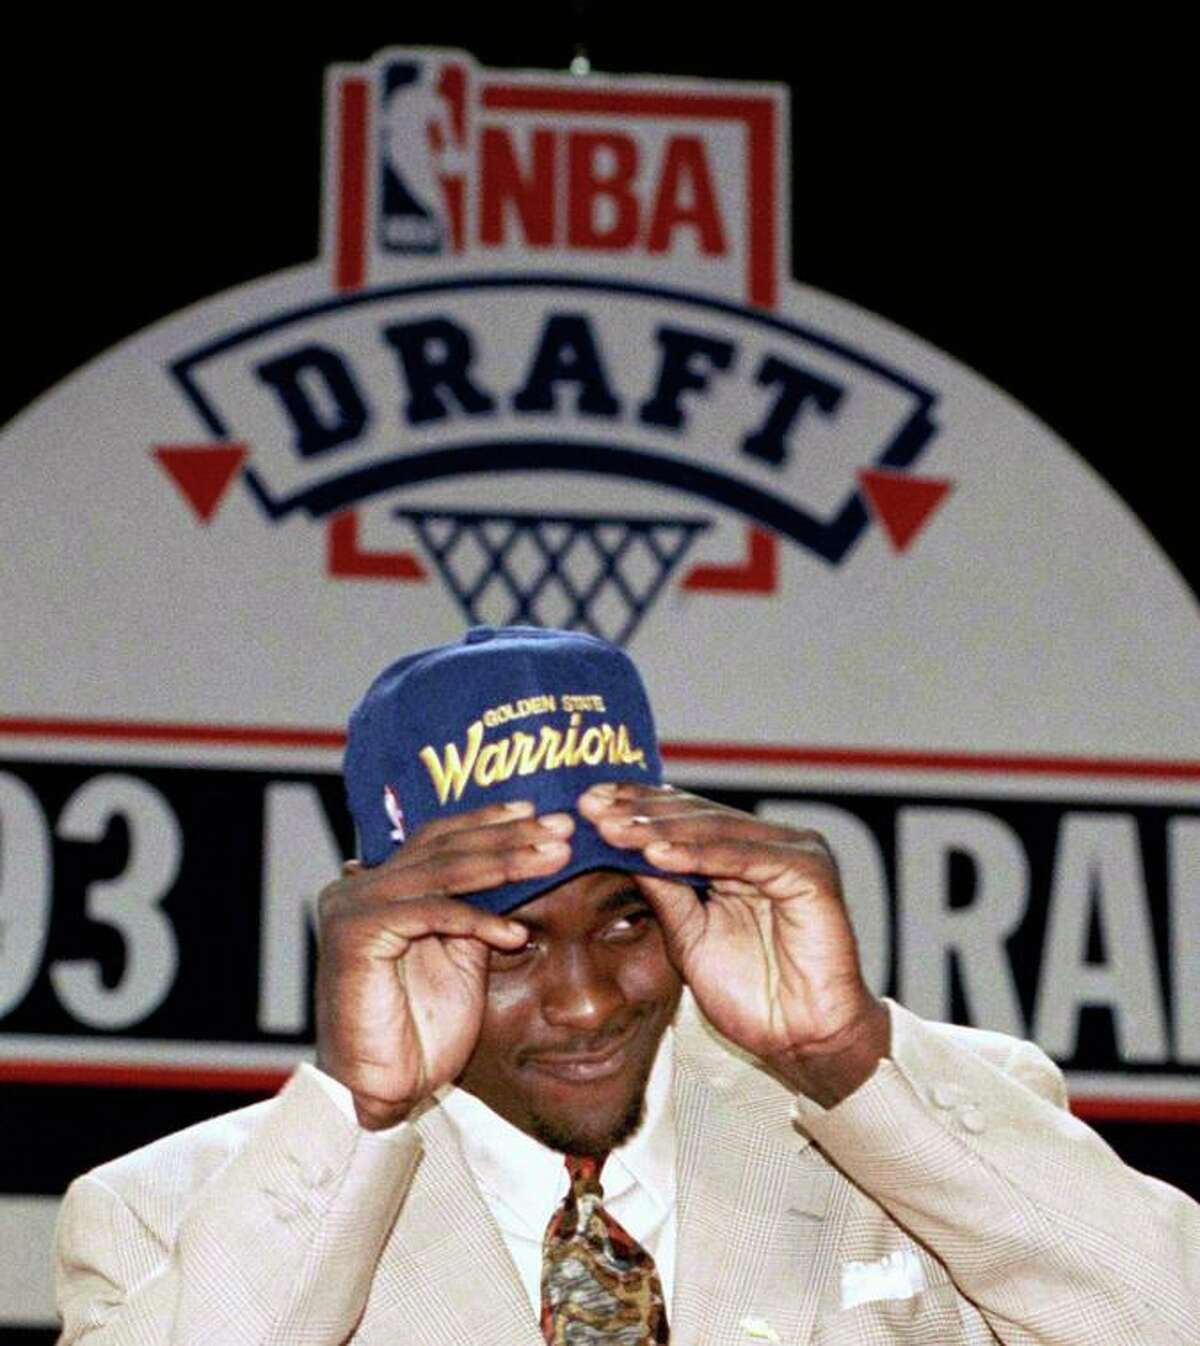 Michigans Chris Webber puts on a Golden State Warriors hat after Webber was traded to Golden State during the NBA draft at the Palace, Wednesday, June 30, 1993, Auburn Hills, Mich. Webber was the first selection in the draft by the Orlando Magic, then he was traded to Golden State when the Warriors selected, Anfernee Hardaway as the third pick. (AP Photo/Lennox Mclendon)